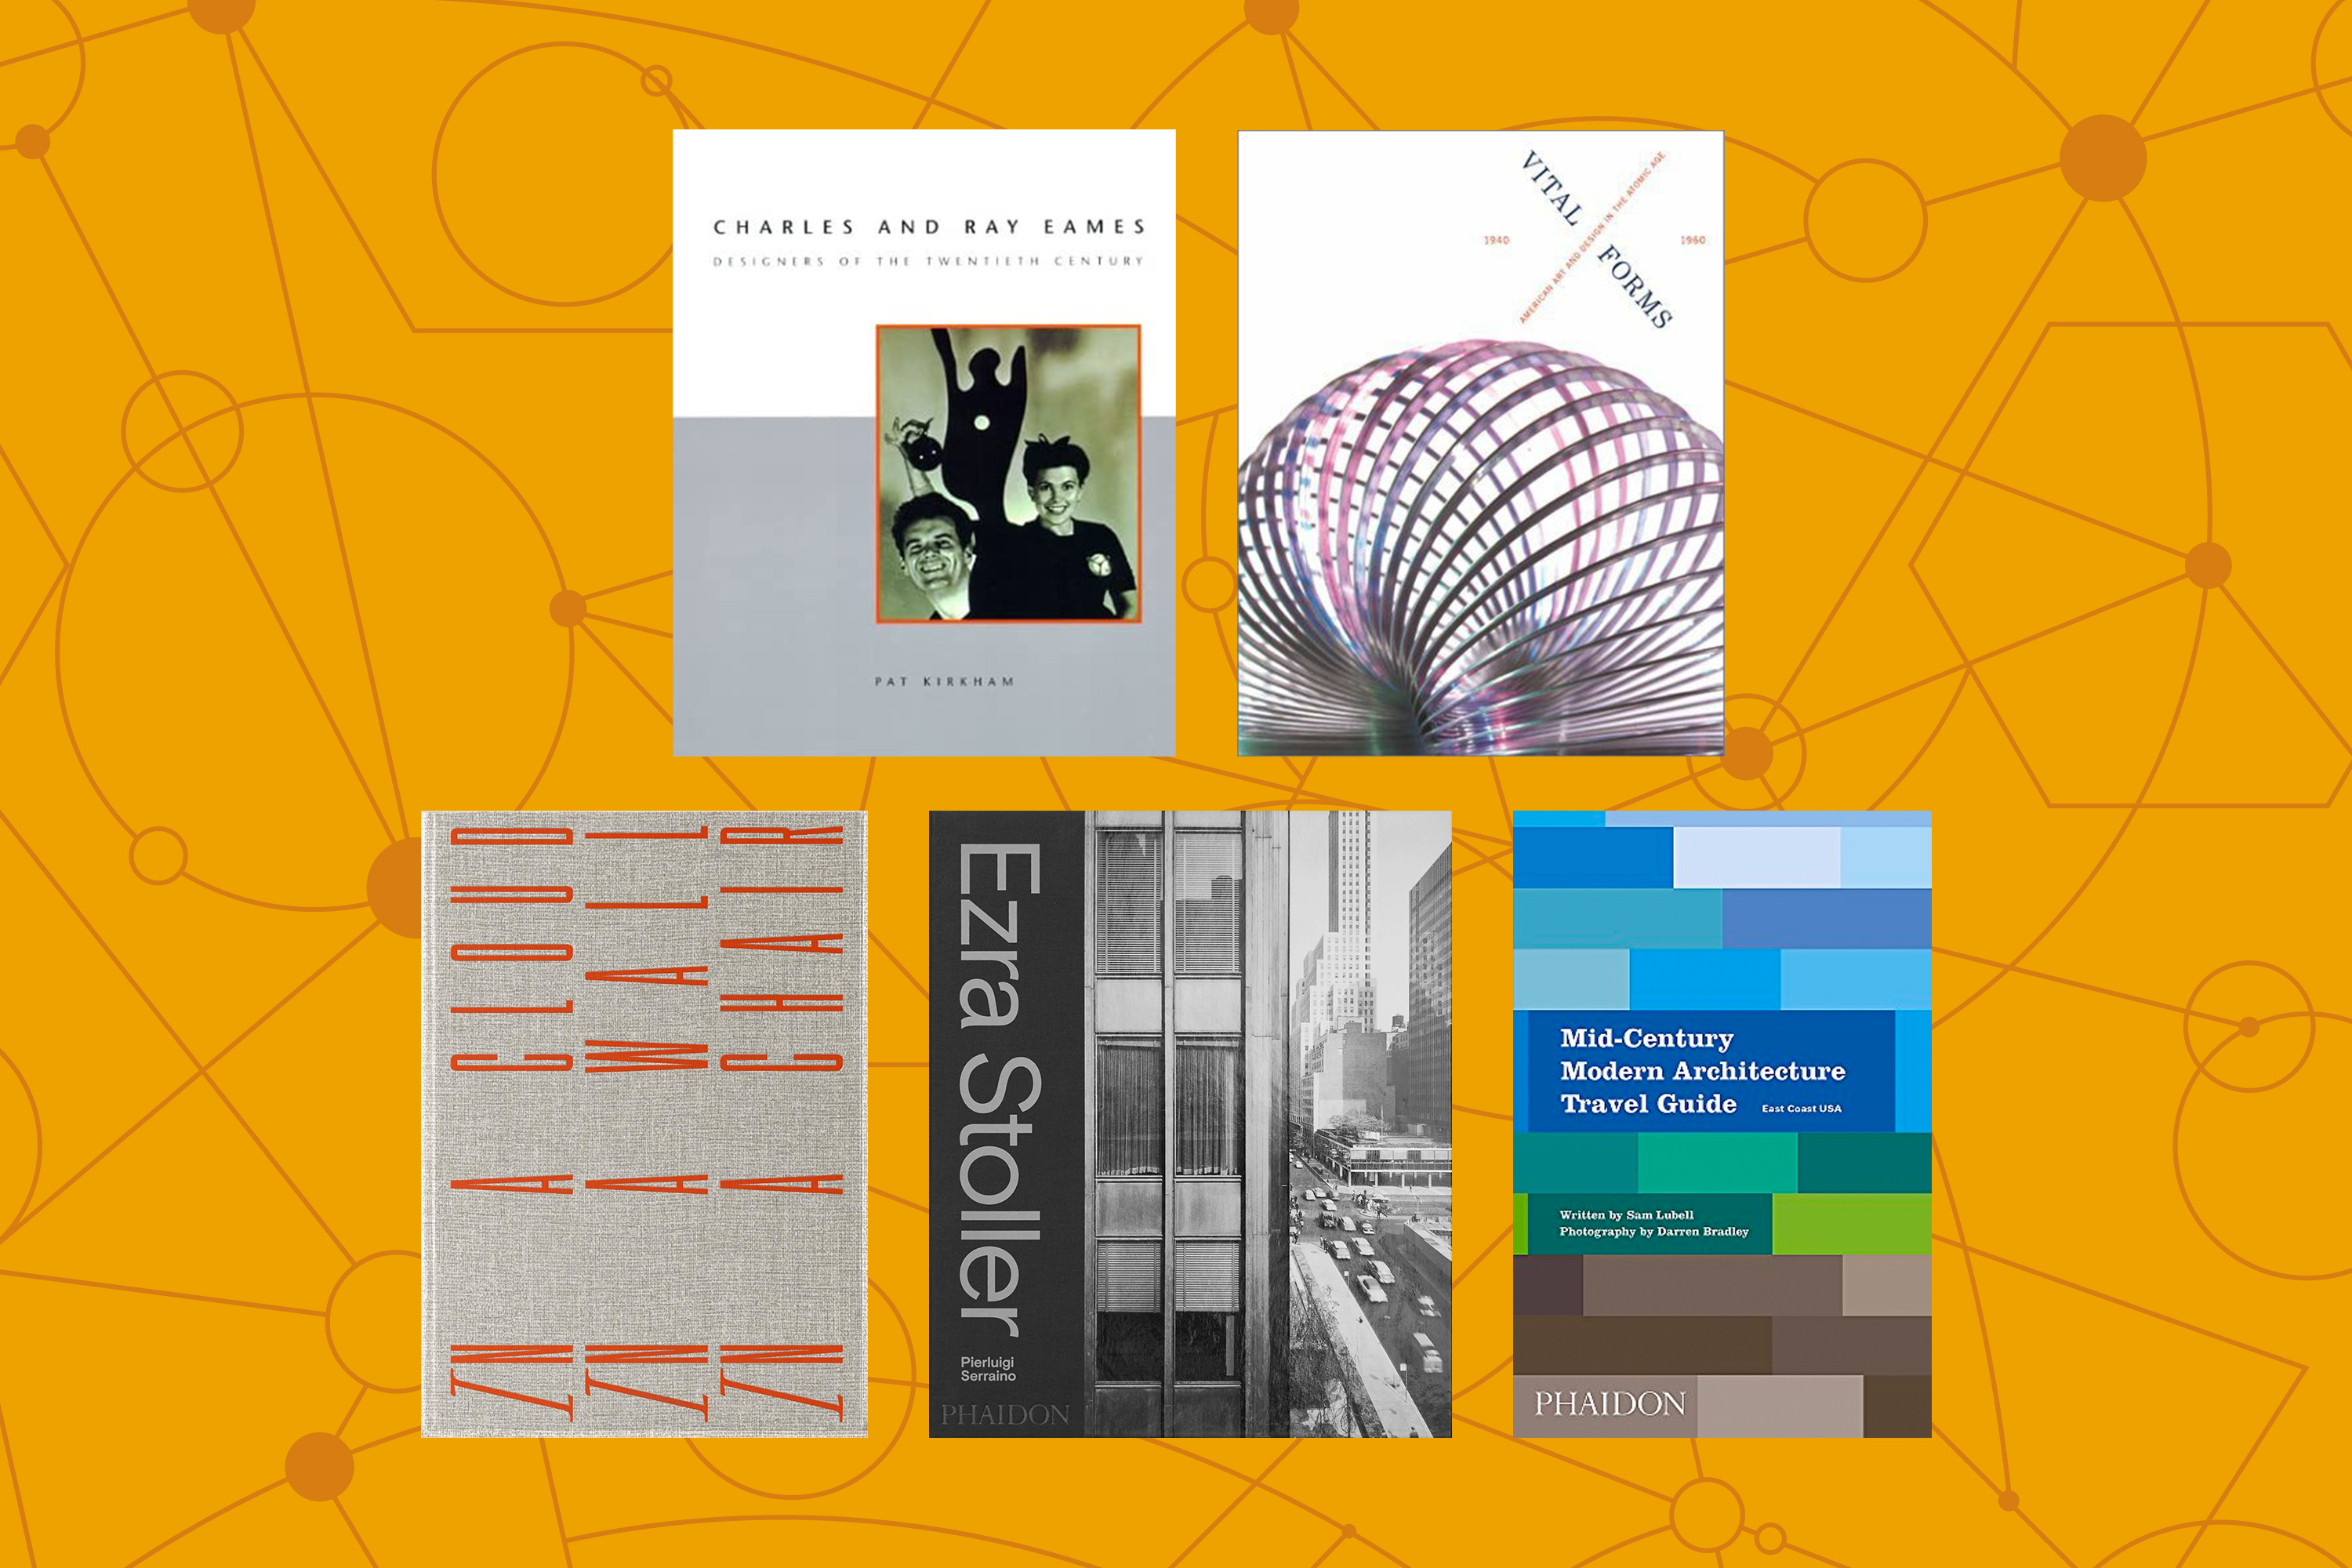 A collage of five book covers. The first has an image of Charles and Ray Eames on the cover, the second has a close-up image of a Slinky, the third is a pattern of different shades of blue and brown, the fourth has a photograph of a skyscraper, the fifth has orange lettering on it